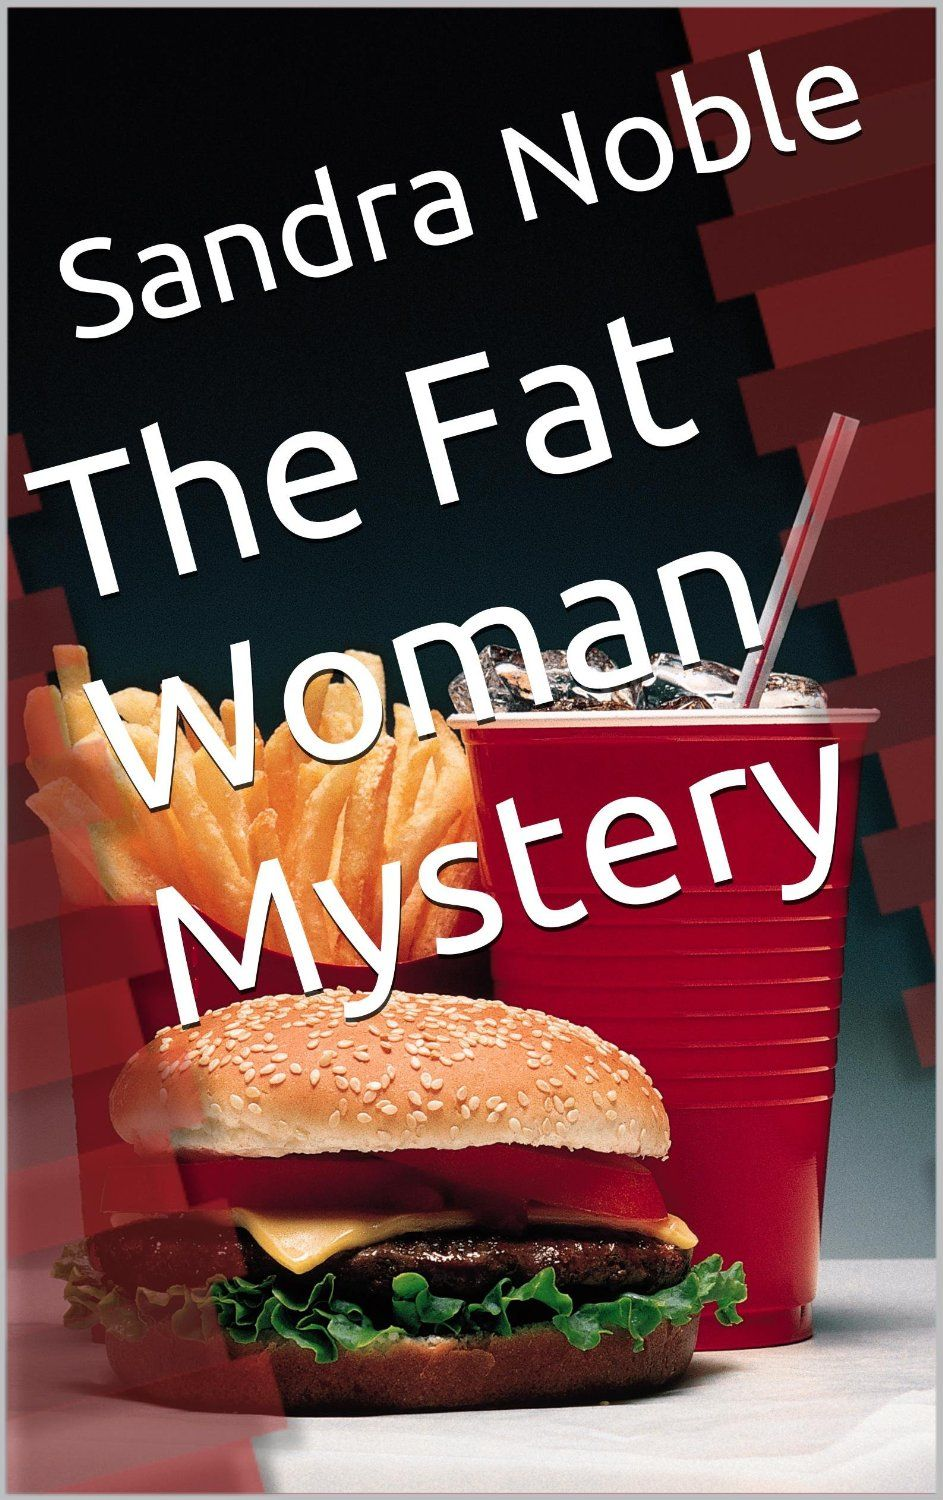 The Fat Woman Mystery  ~ 4.8 Stars $0.99 Kindle Books on the Move! http://www.moreforlessonline.com/books.html #amreading #kindle #books